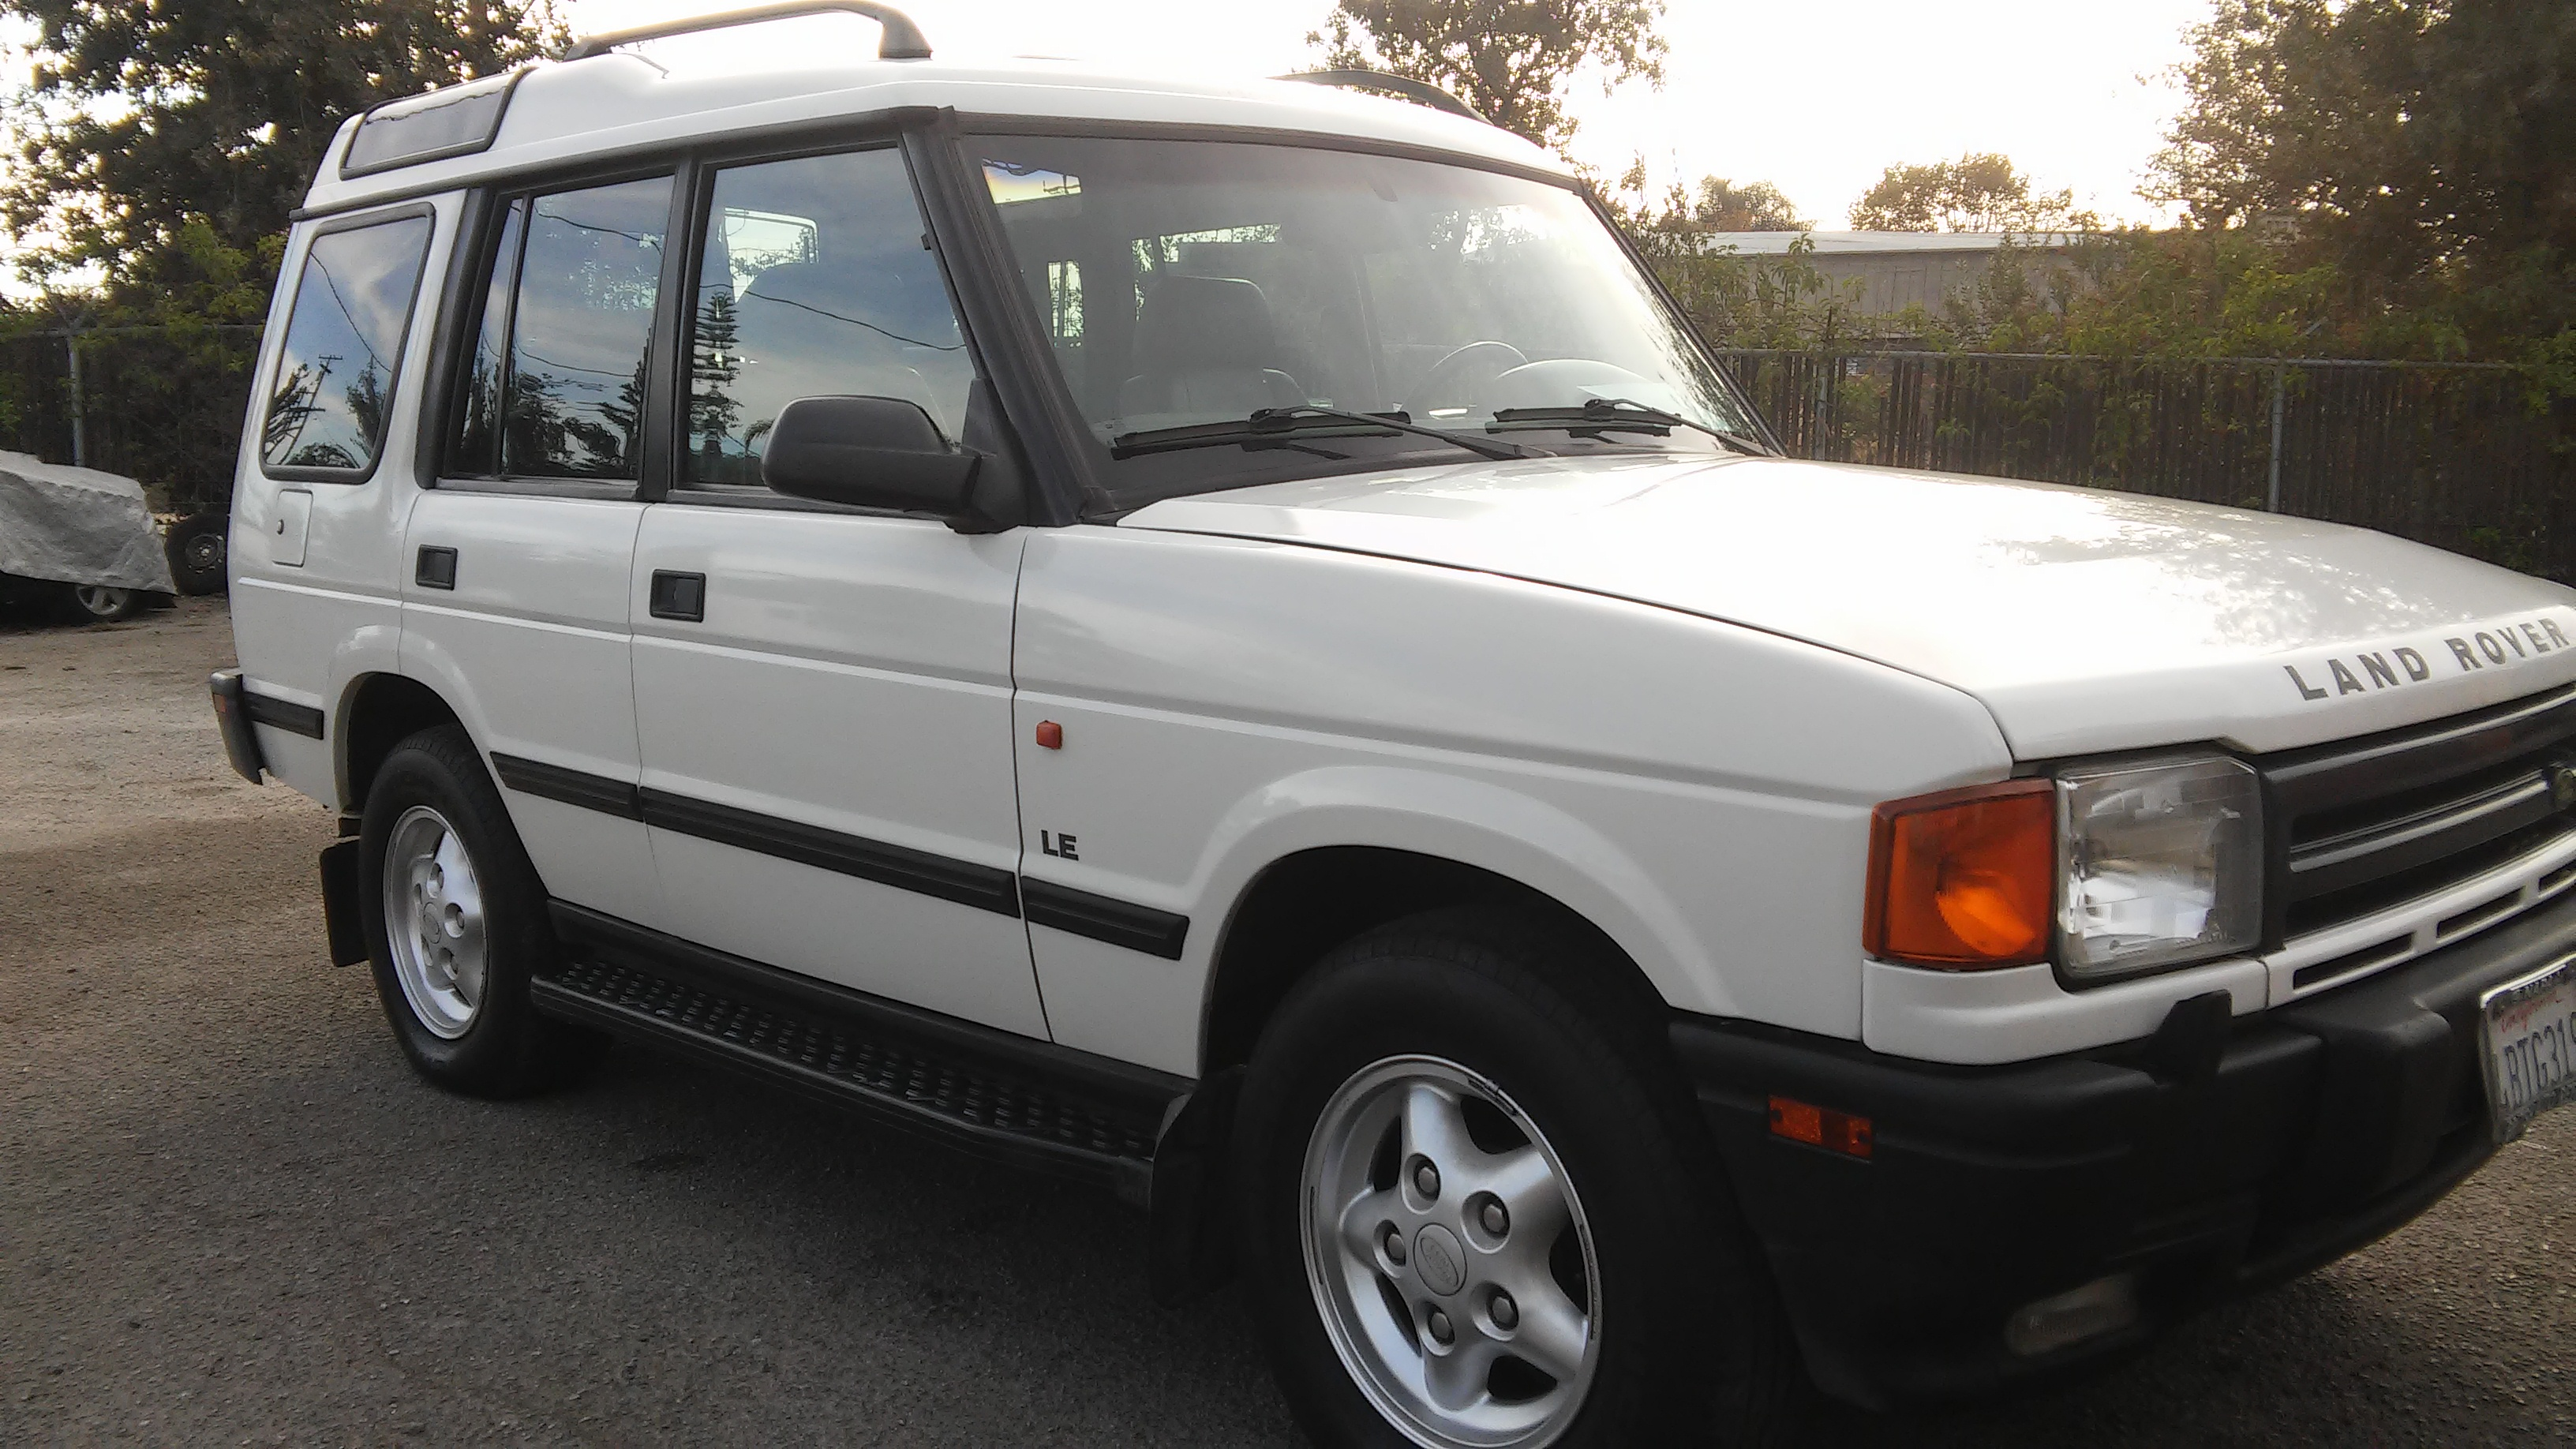 1998 landrover discovery recently donated